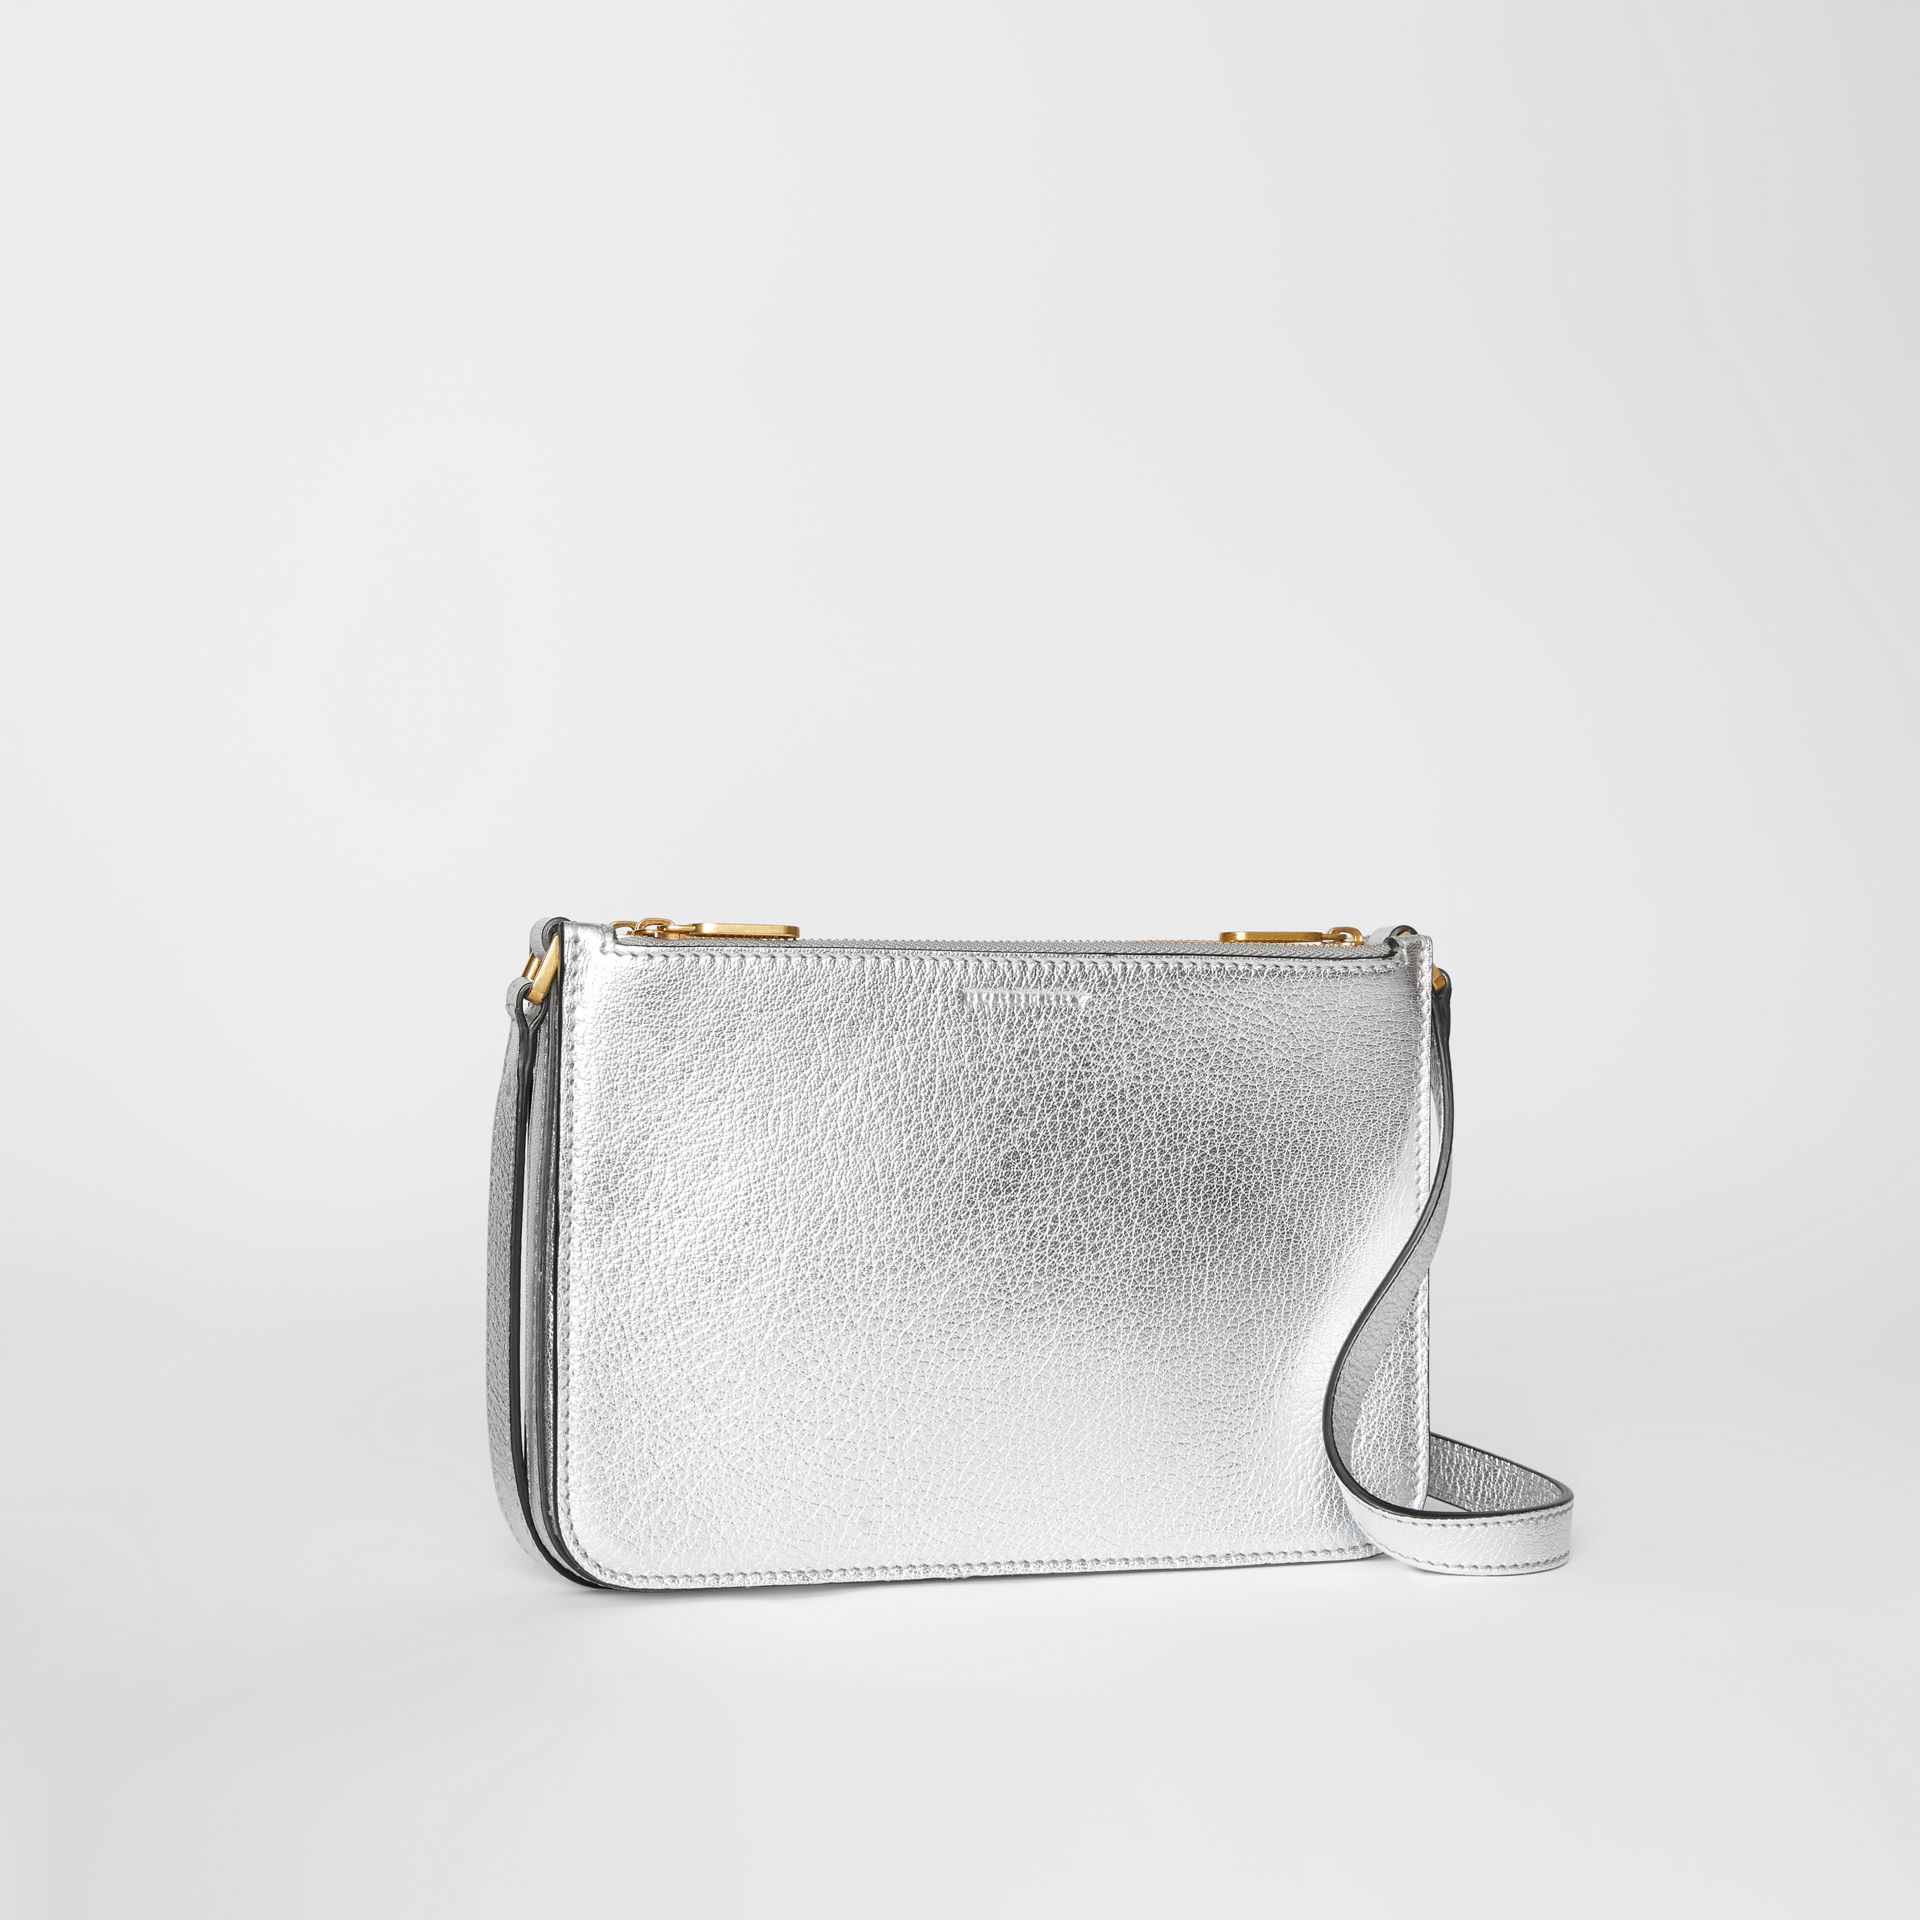 Triple Zip Metallic Leather Crossbody Bag in Silver - Women | Burberry - gallery image 6